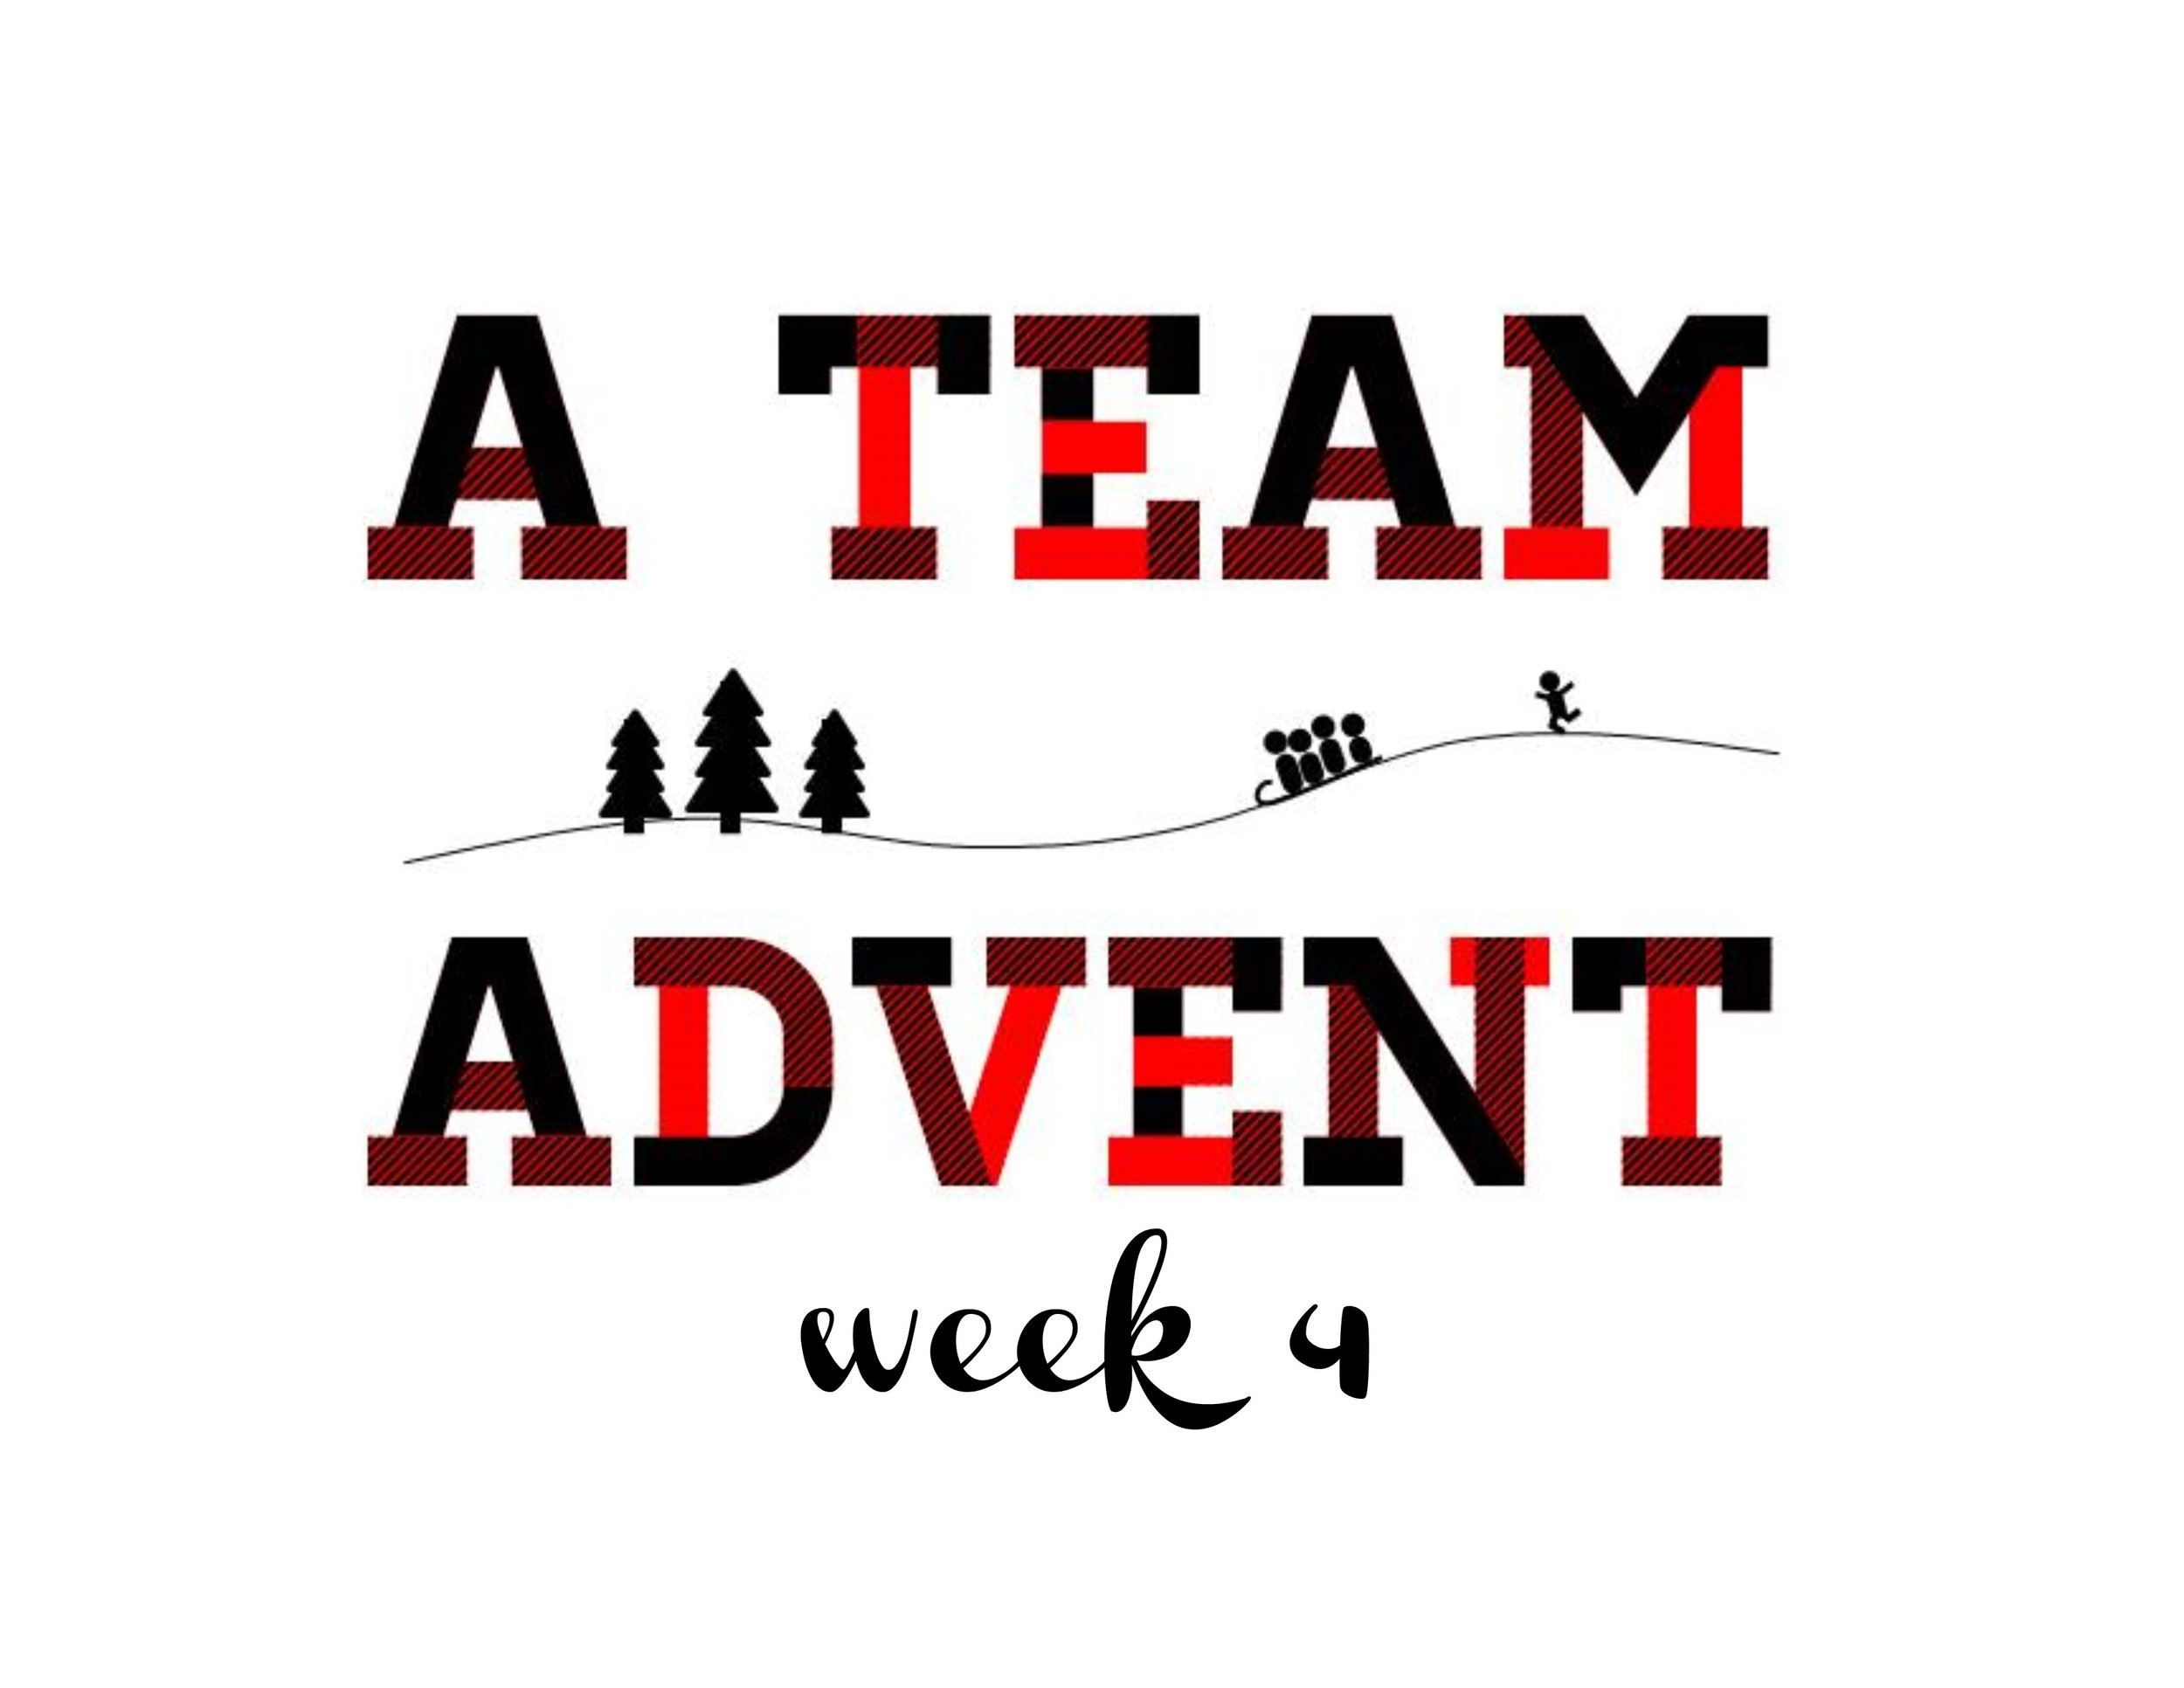 ateam_week4